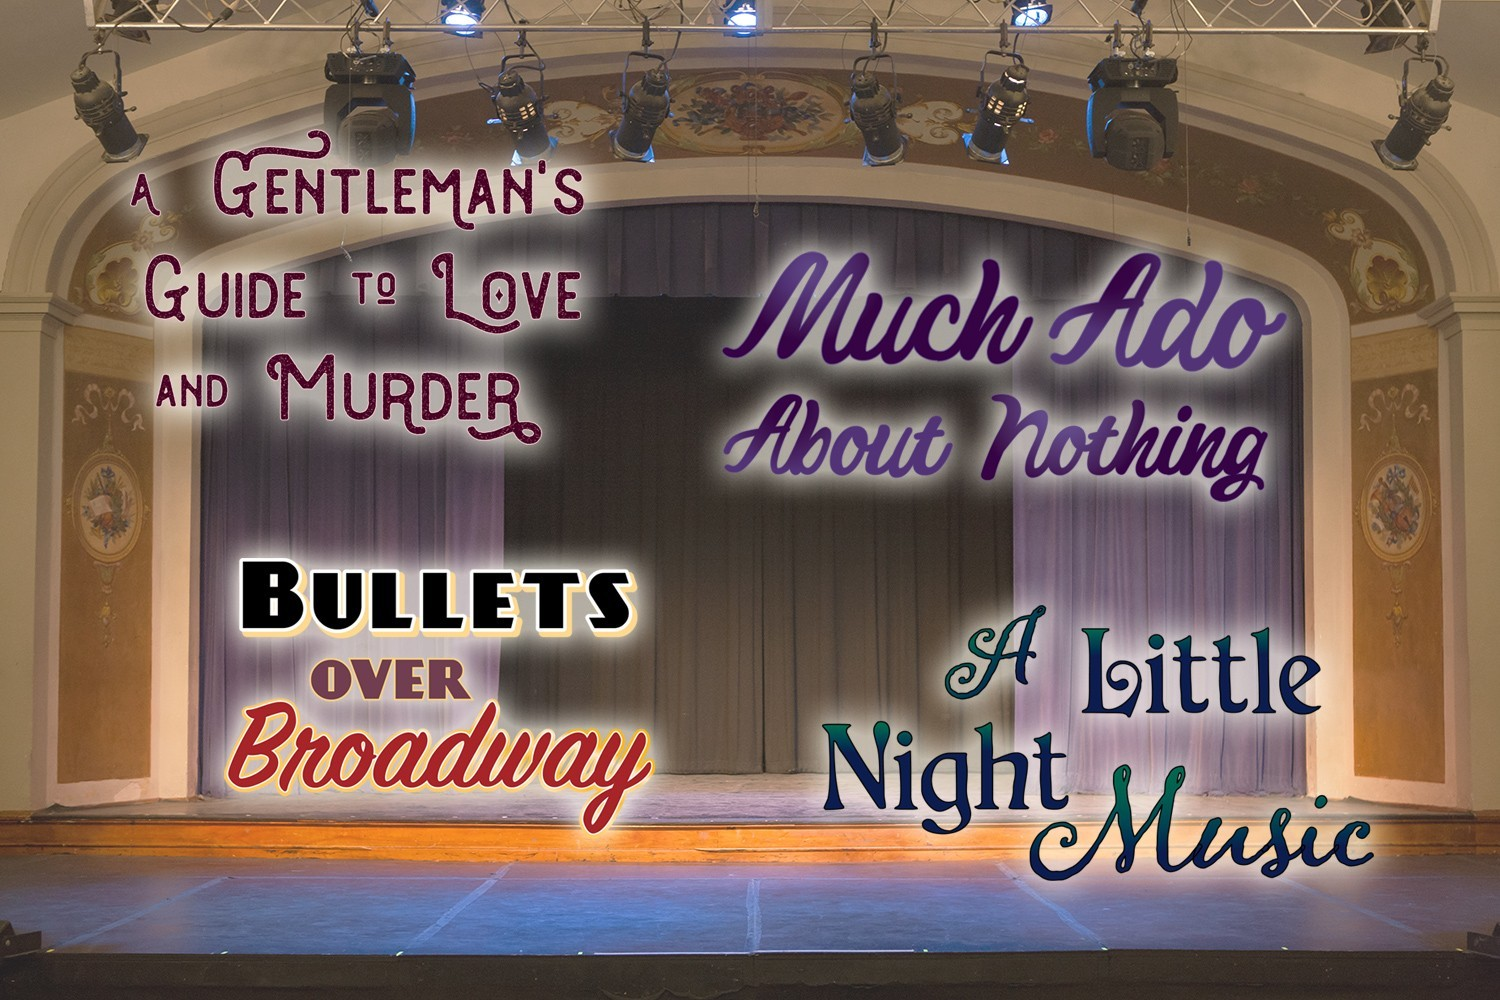 A Gentleman's Guide to Love and Murder, Much Ado About Nothing, Bullets Over Broadway, A Little Night Music